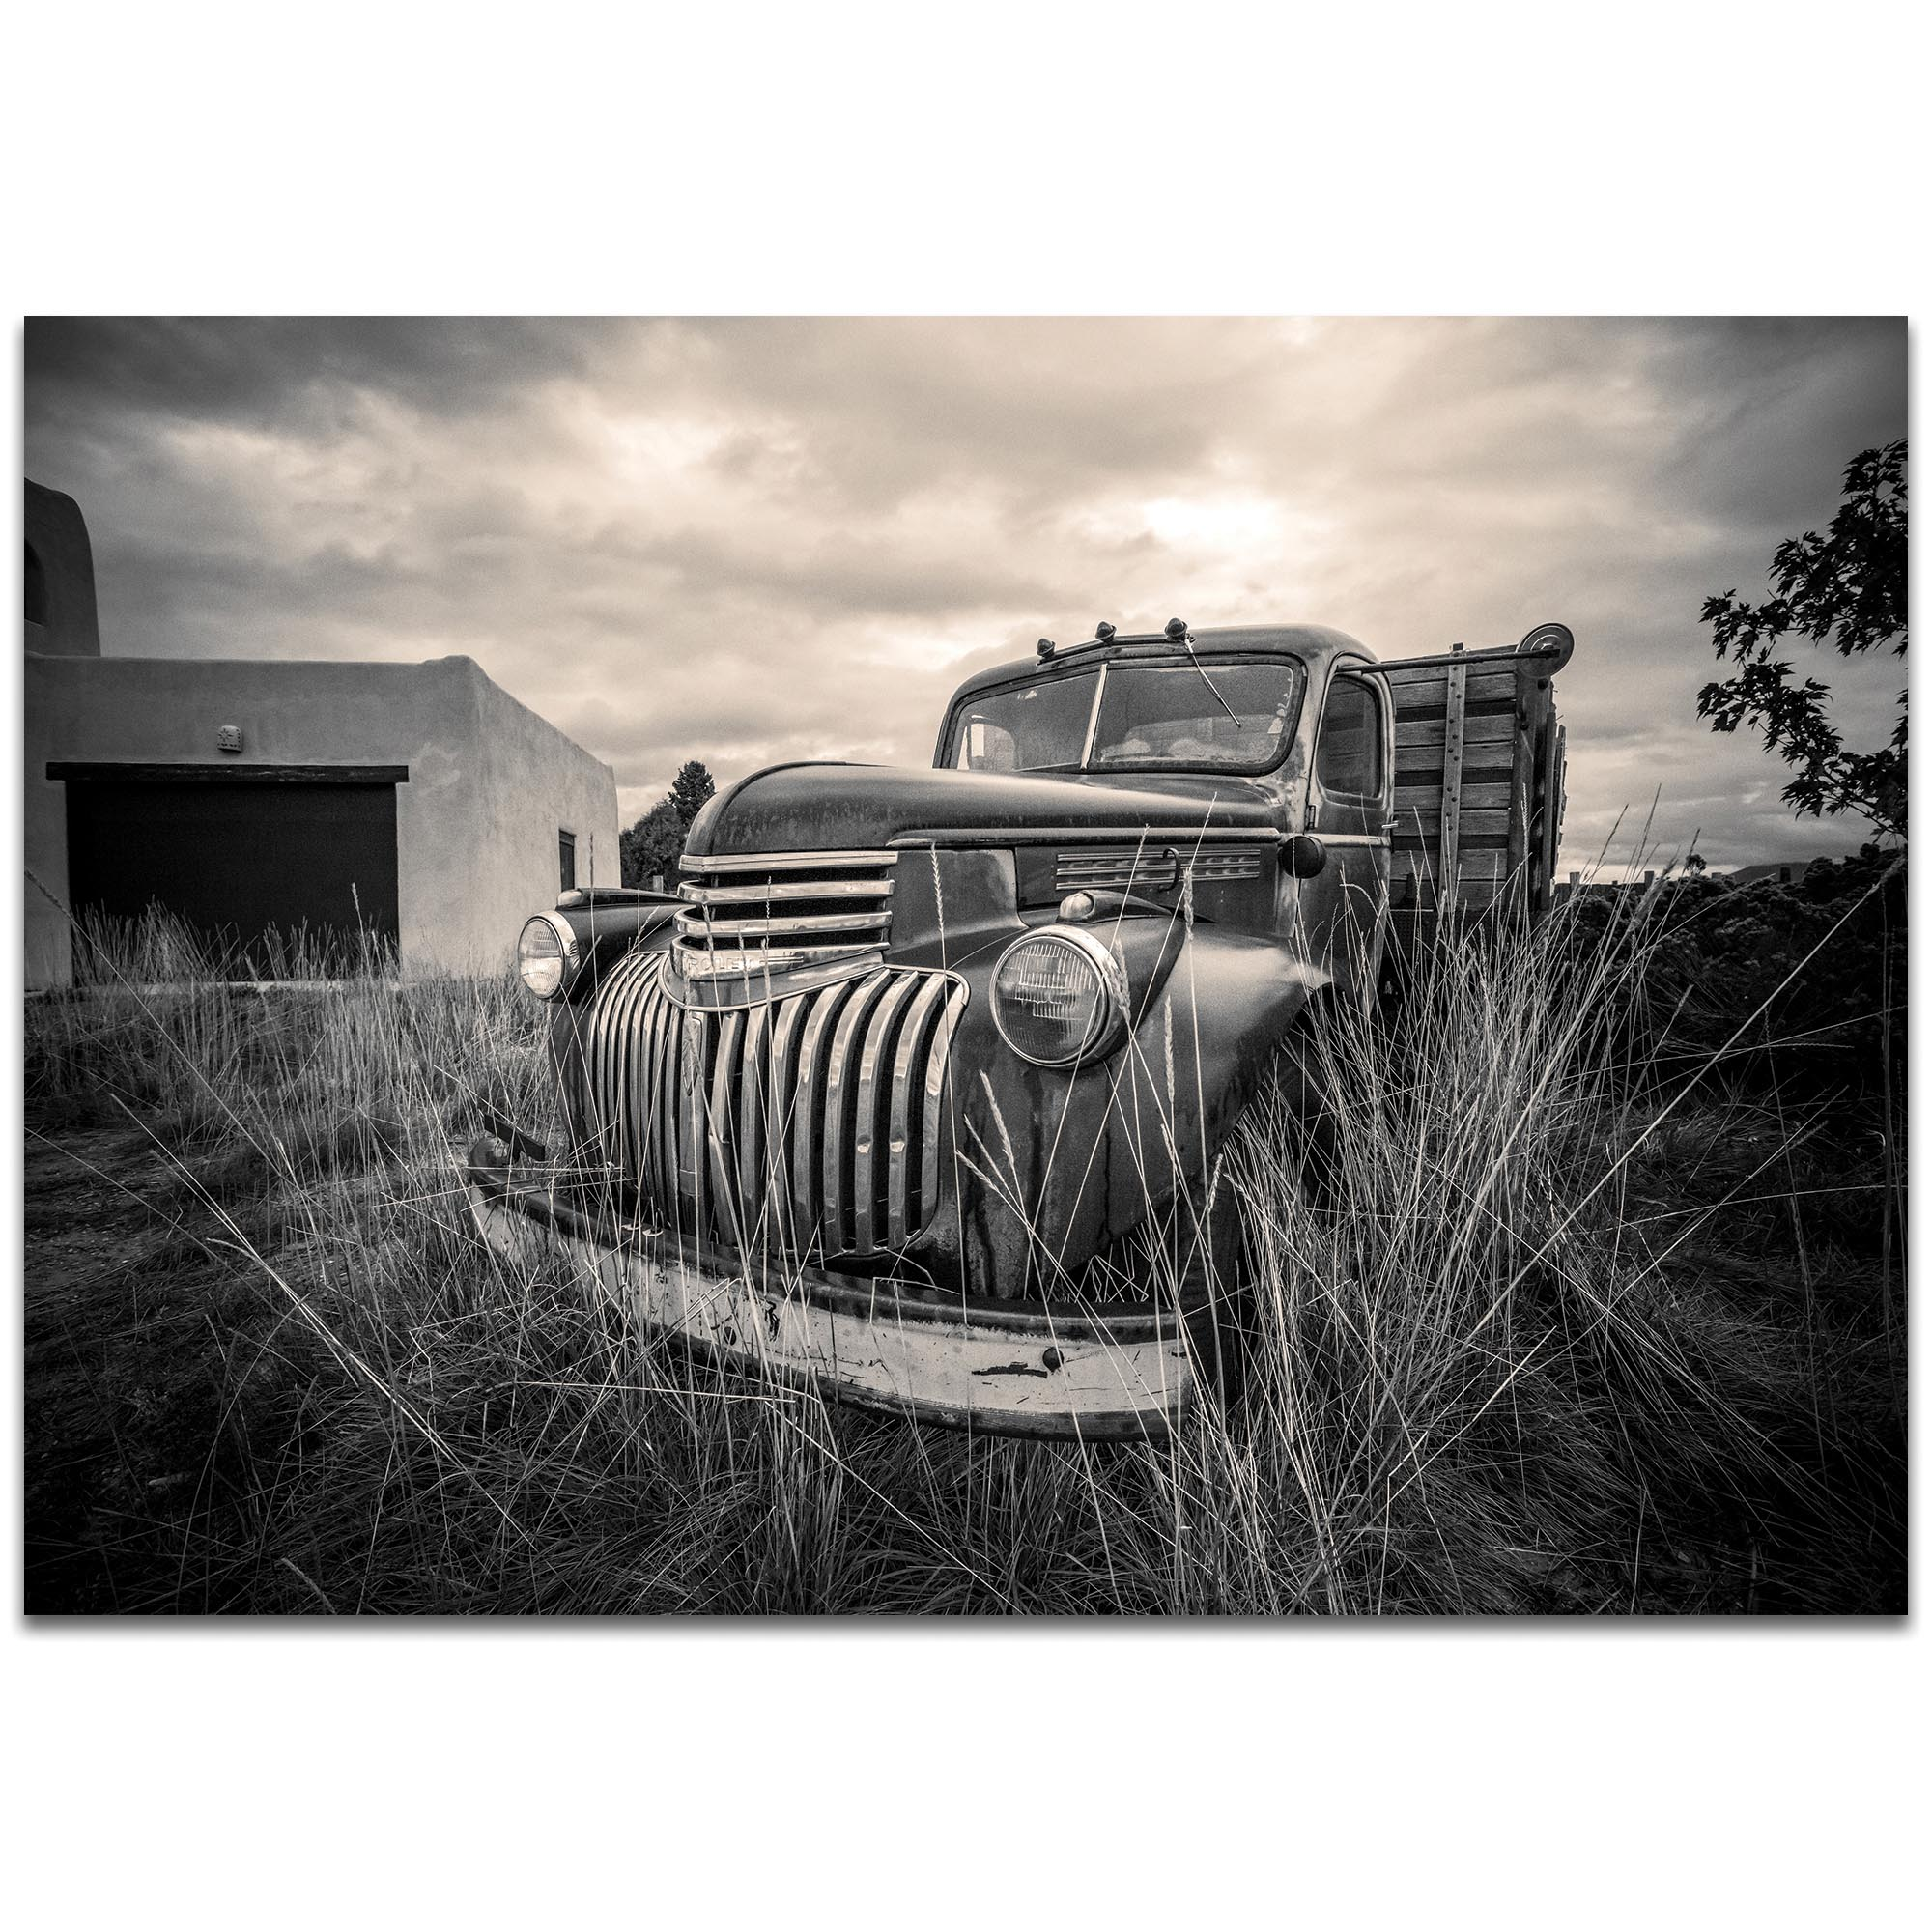 Americana Wall Art 'Farm Truck' - Classic Truck Decor on Metal or Plexiglass